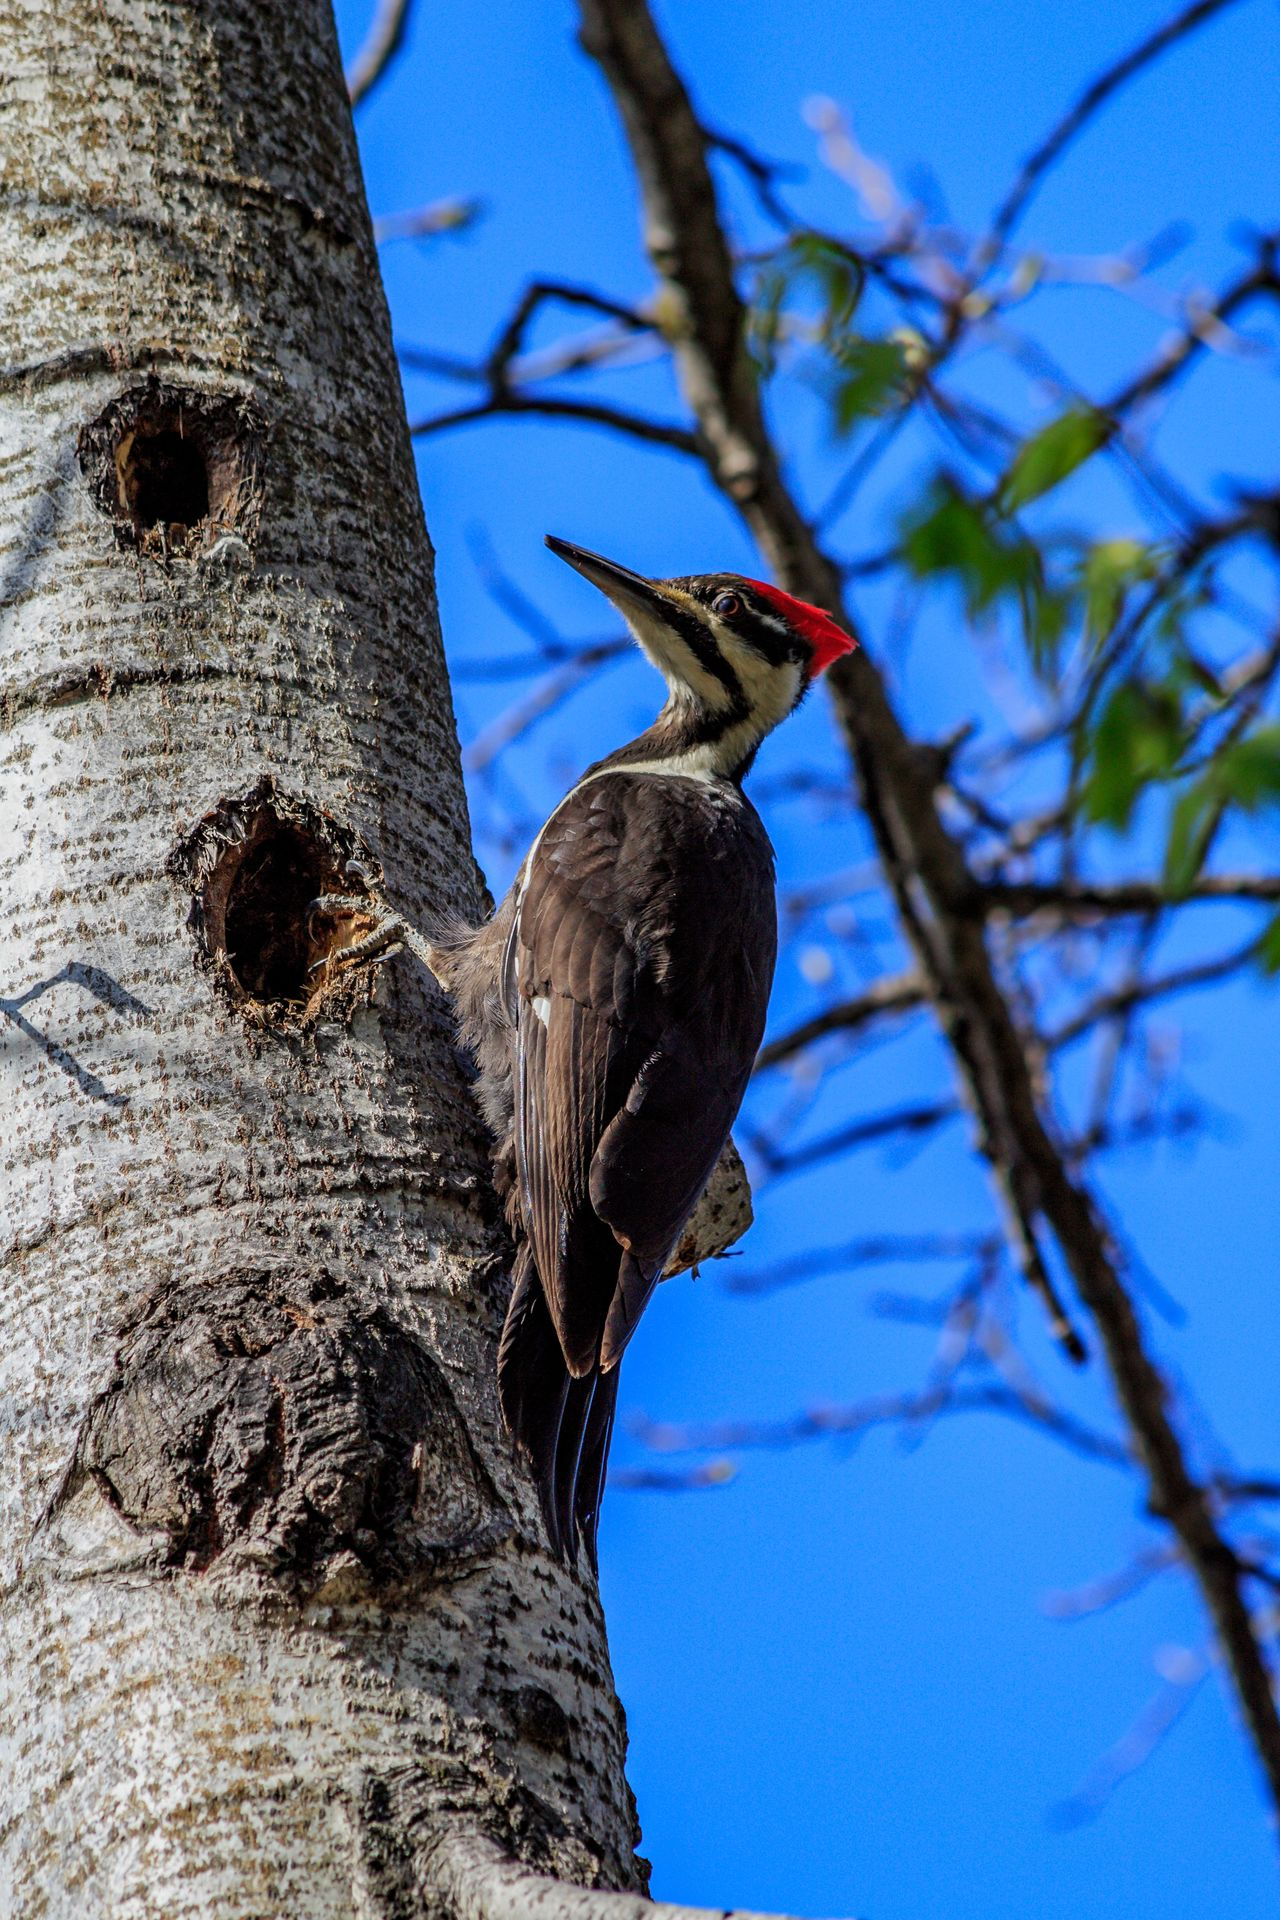 Animal Themes Animals In The Wild Bird Bird Photography Bird Watching Birds Birds_collection Day Nature No People One Animal Outdoors Pileated Woodpecker Toronto Zoo WoodLand Woodpecker Woodpecker In Tree Woodpeckers Zoo Animals